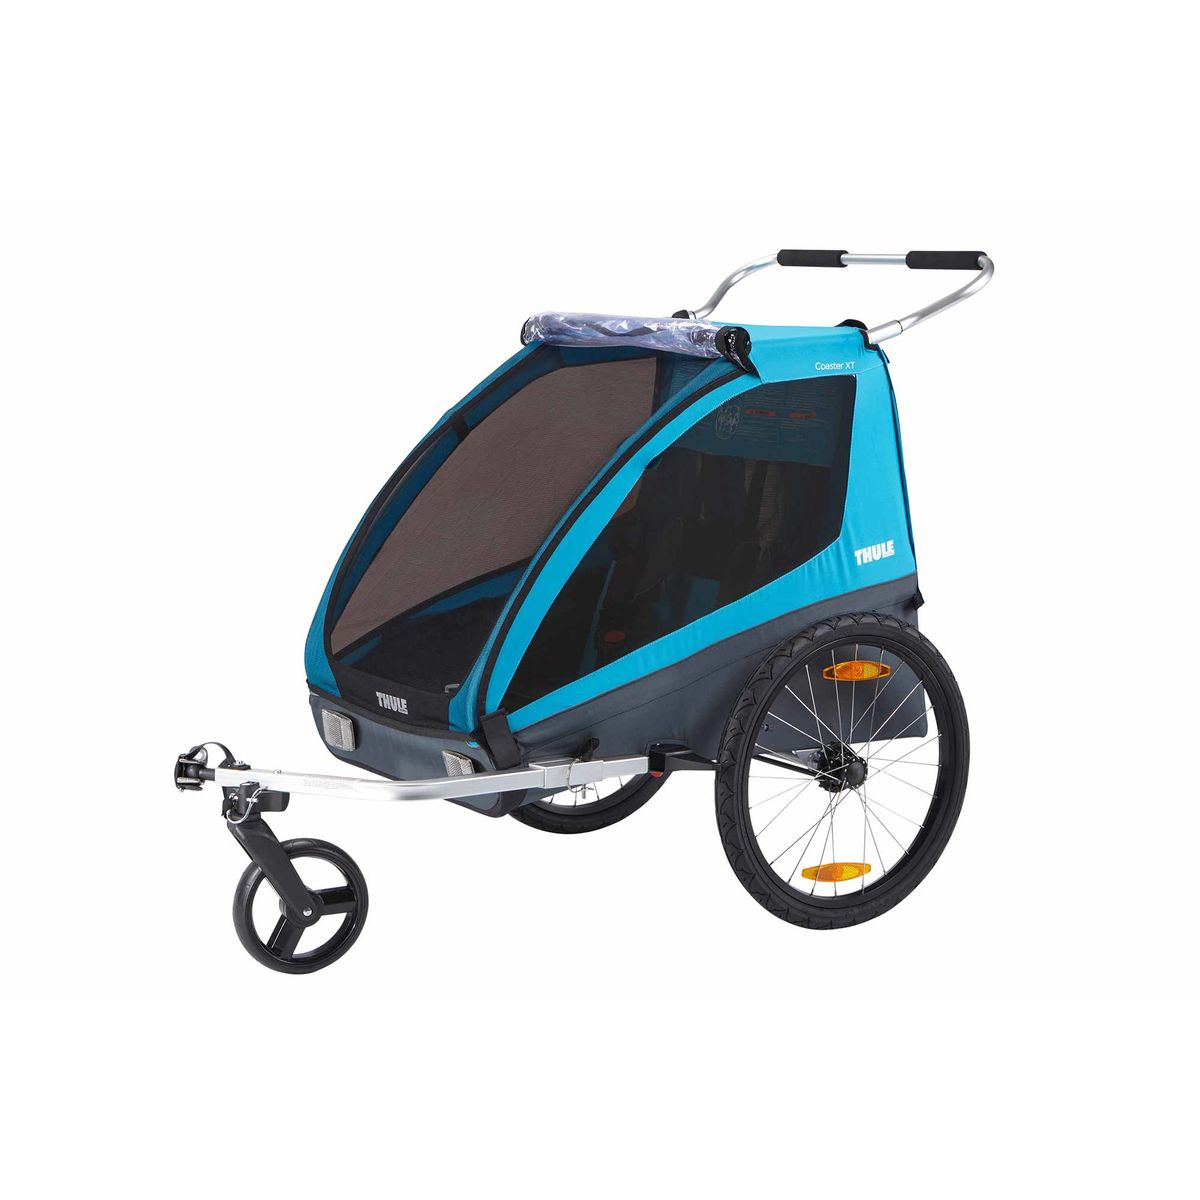 Thule COASTER XT 2 seater kid's trailer | bike_trailers_component